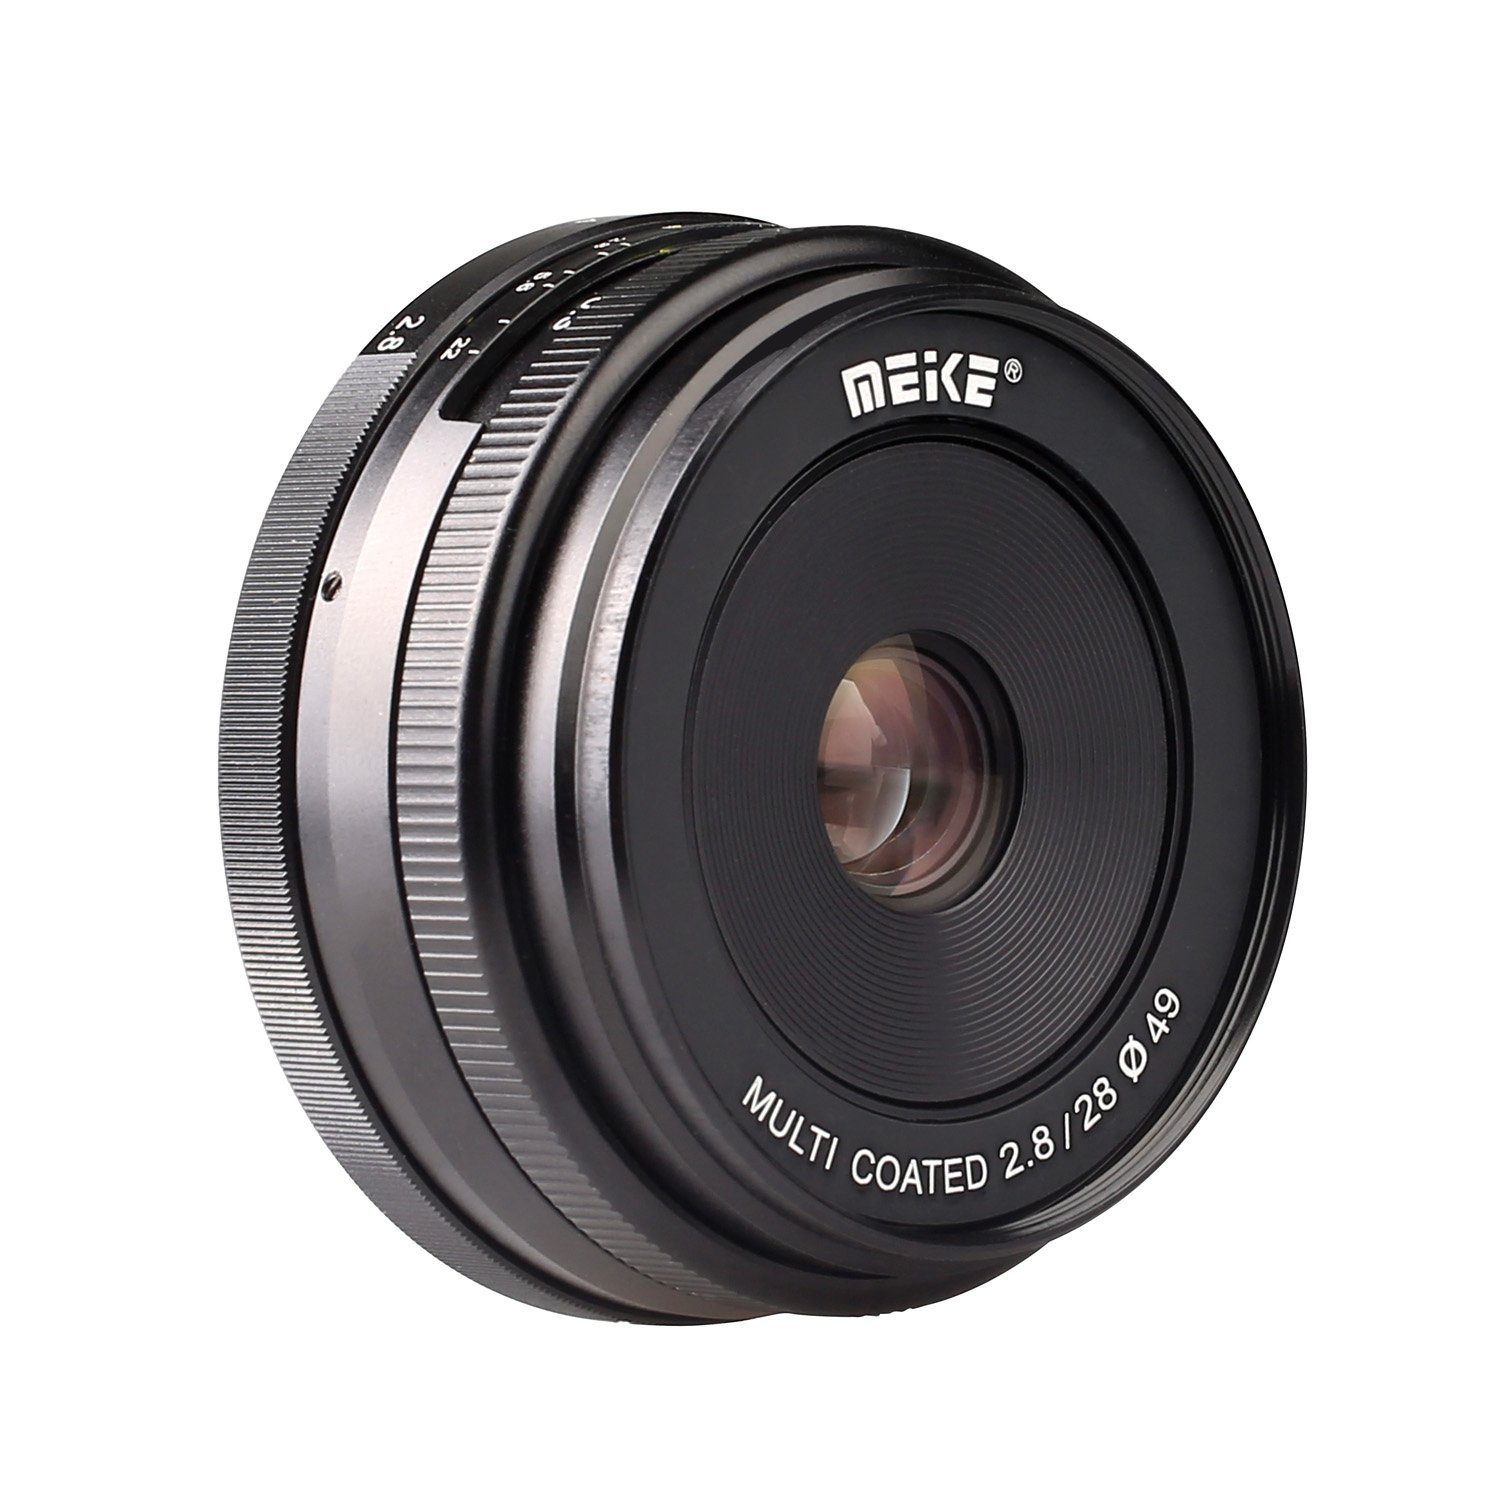 meike mk e 28 2 8 28mm f 2 8 fixed manual focus lens for sony e rh eachshot com Sony Digital Camera Best Lens for Sony NEX